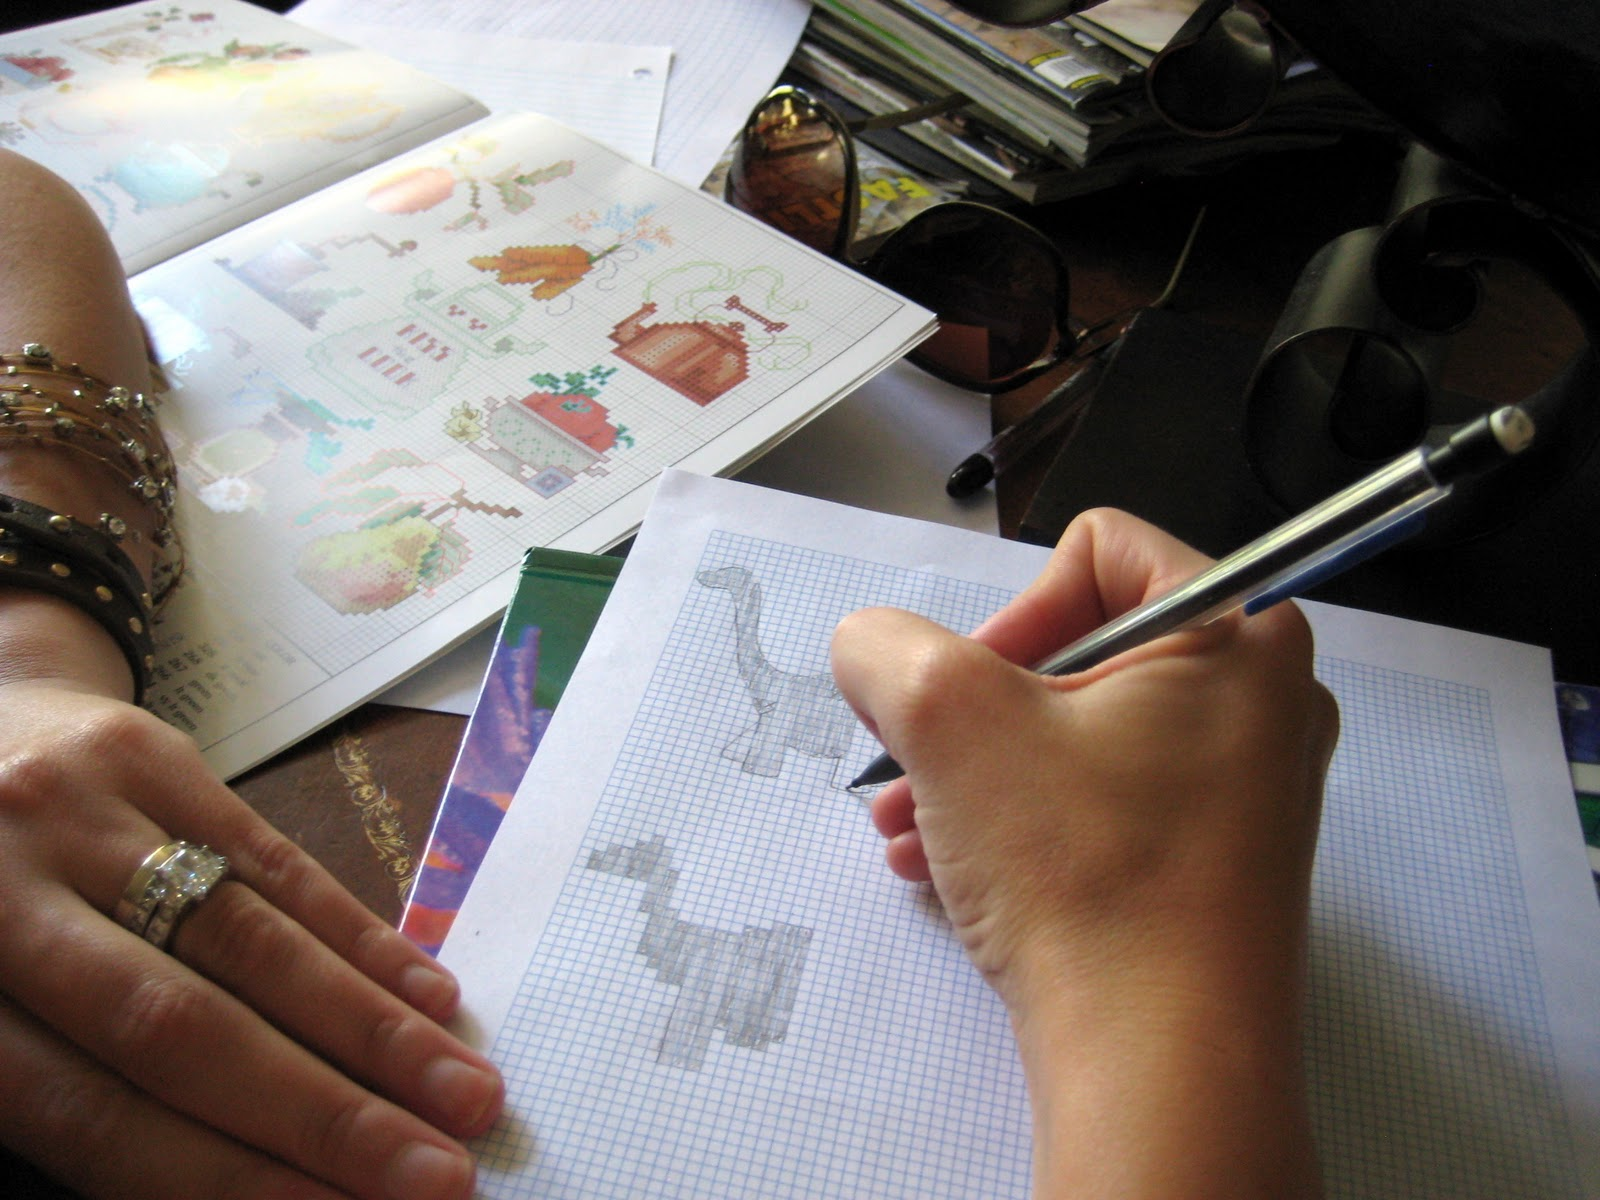 how to make a cross stitch pattern with graph paper